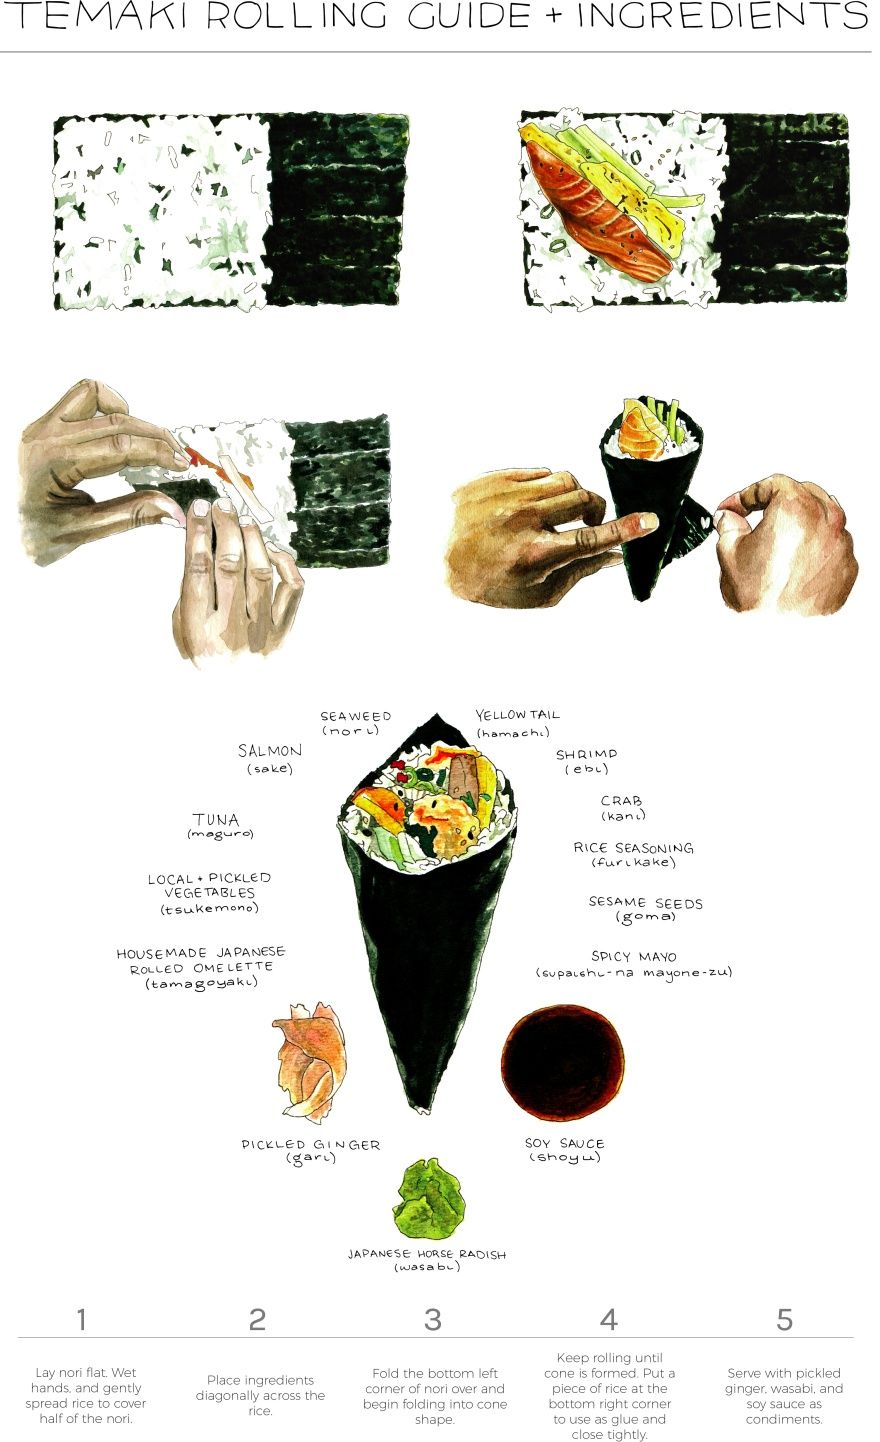 temaki-illustration-18x11